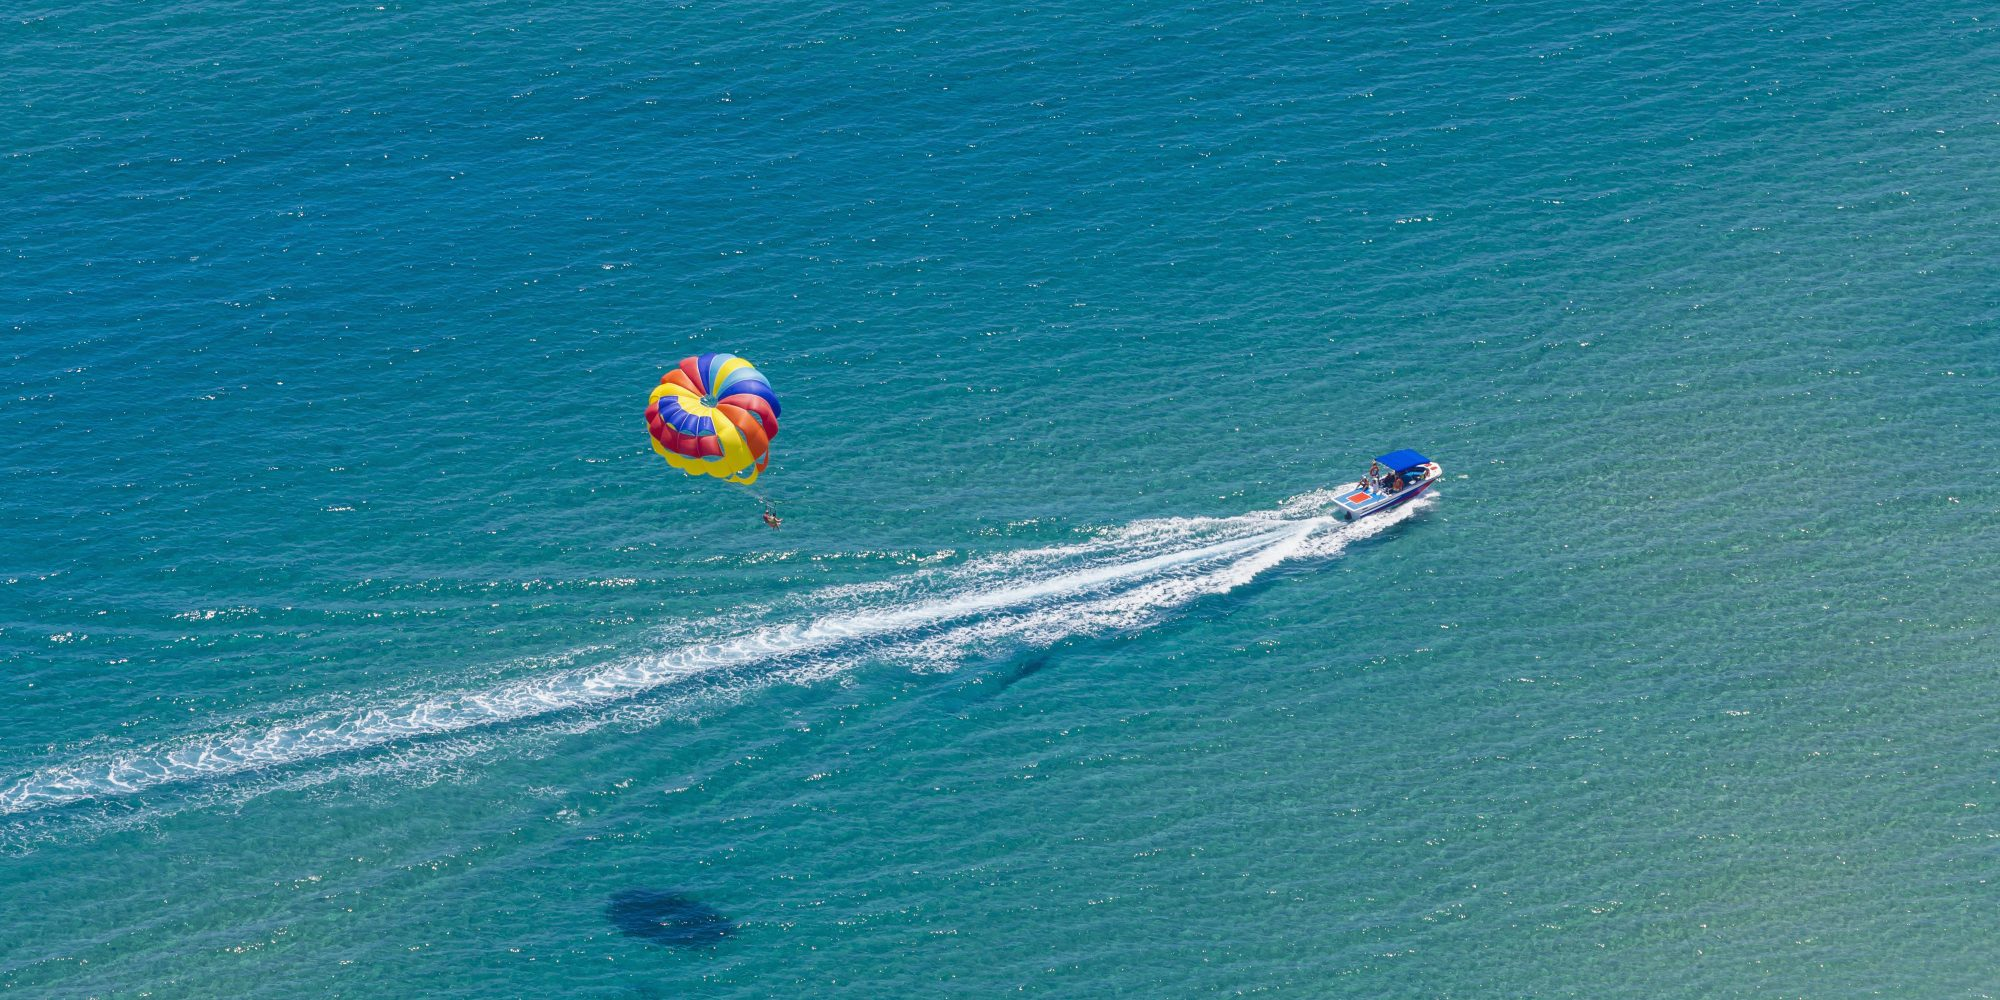 Woman Drifts for 45 Minutes in Terrifying Parasailing Accident Before Crashing, Breaking 4 Ribs